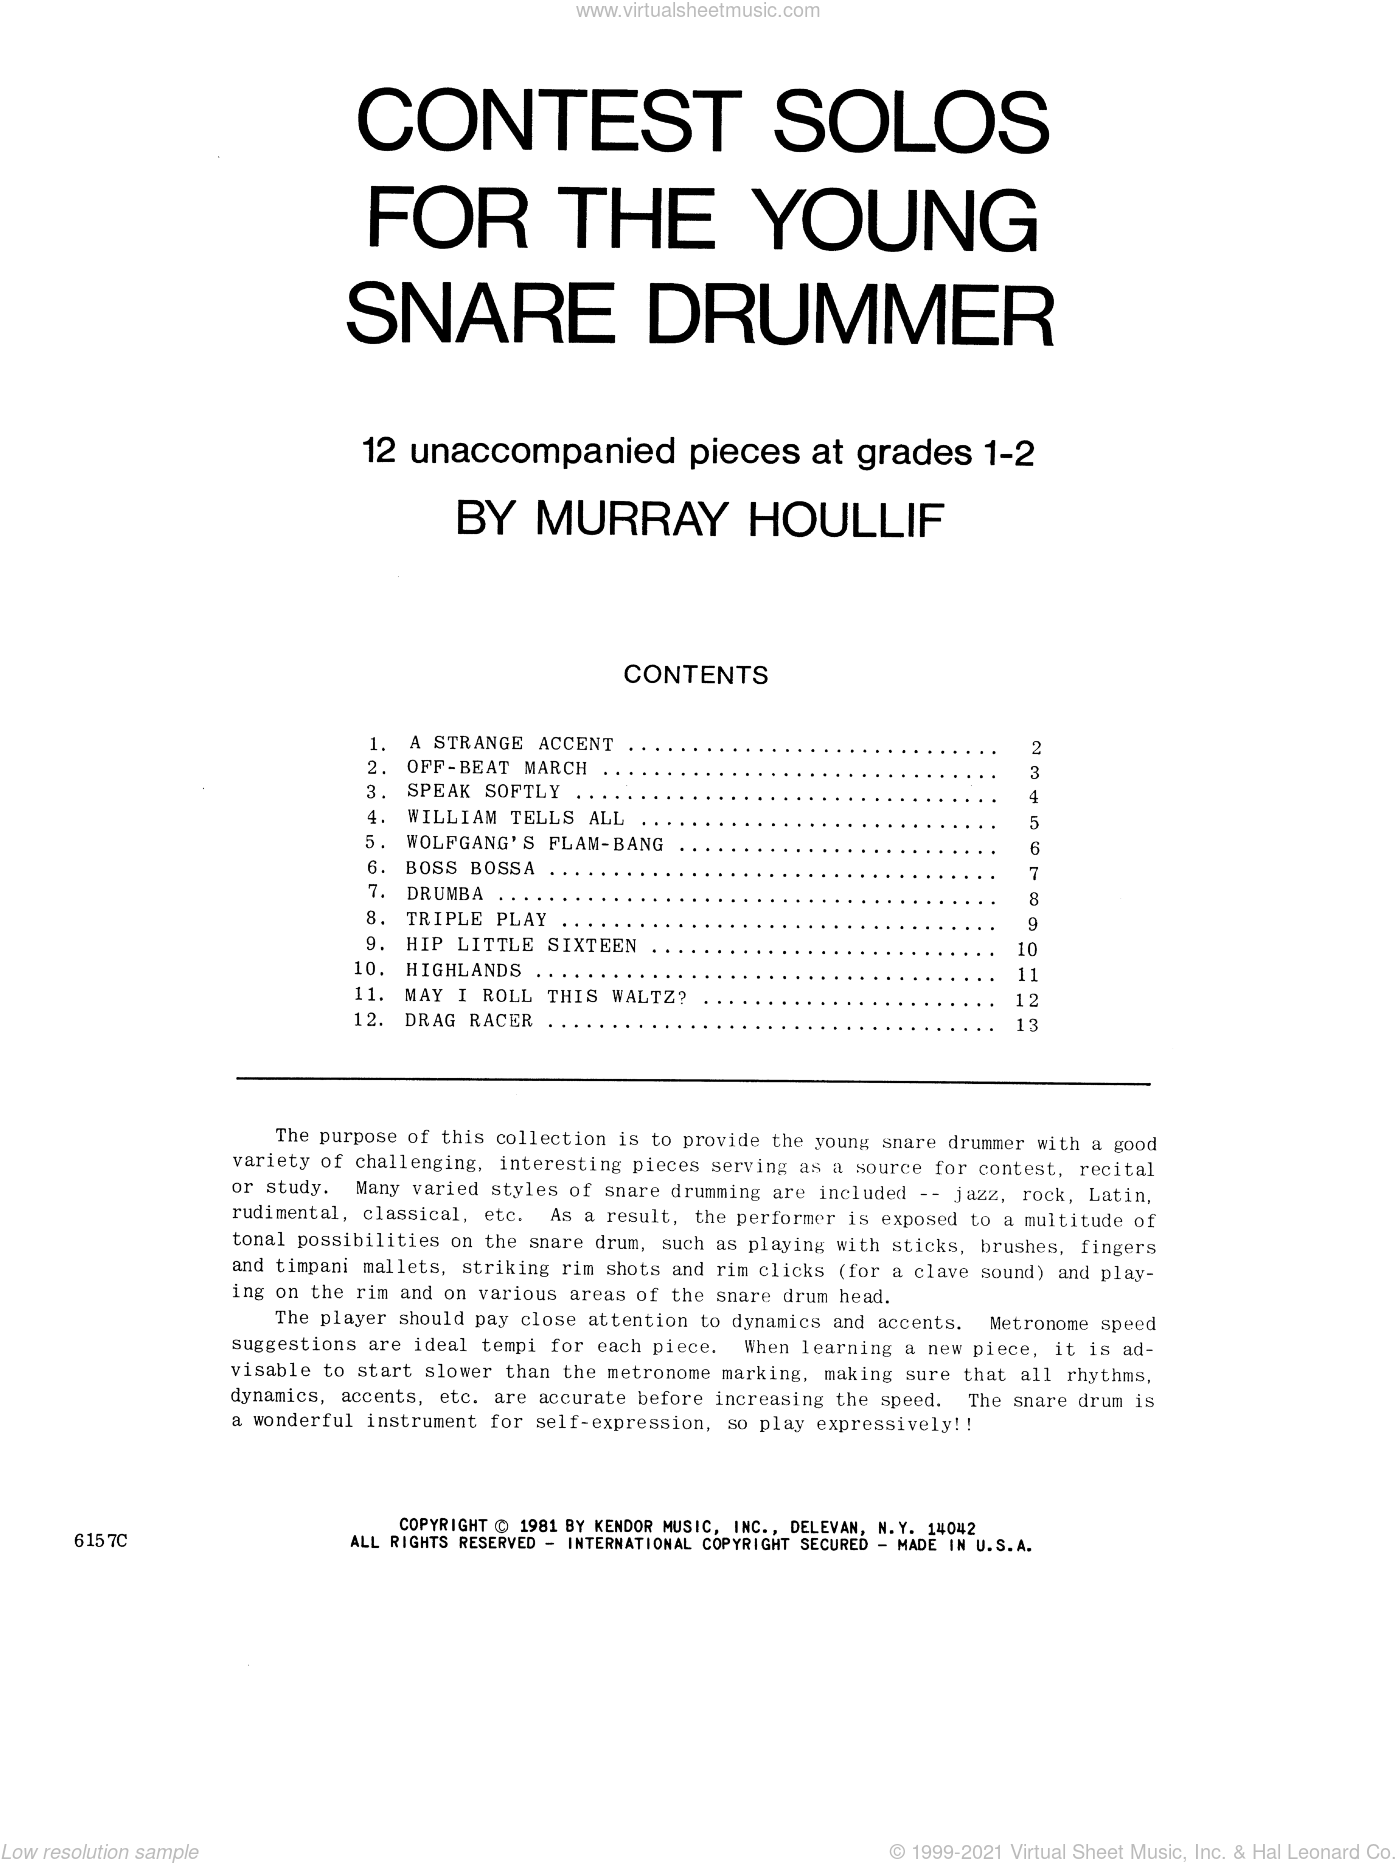 Contest Solos For The Young Snare Drummer sheet music for percussions by Houllif. Score Image Preview.